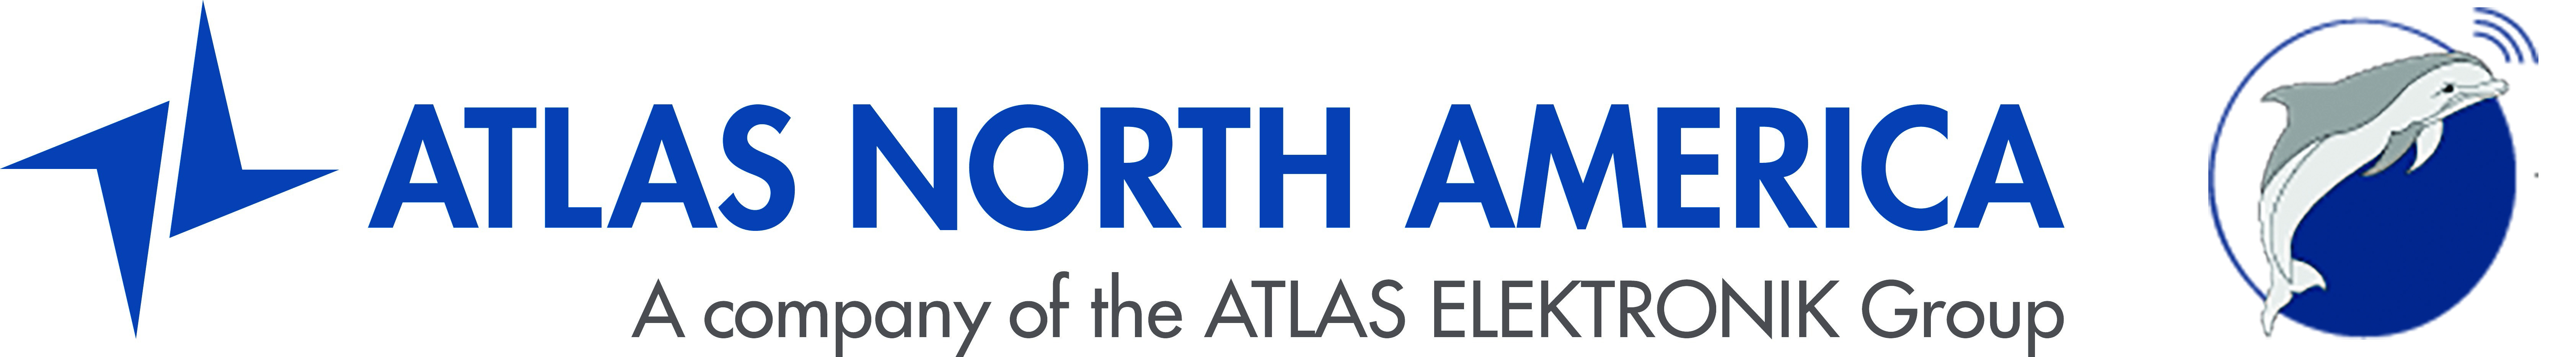 Atlas North America